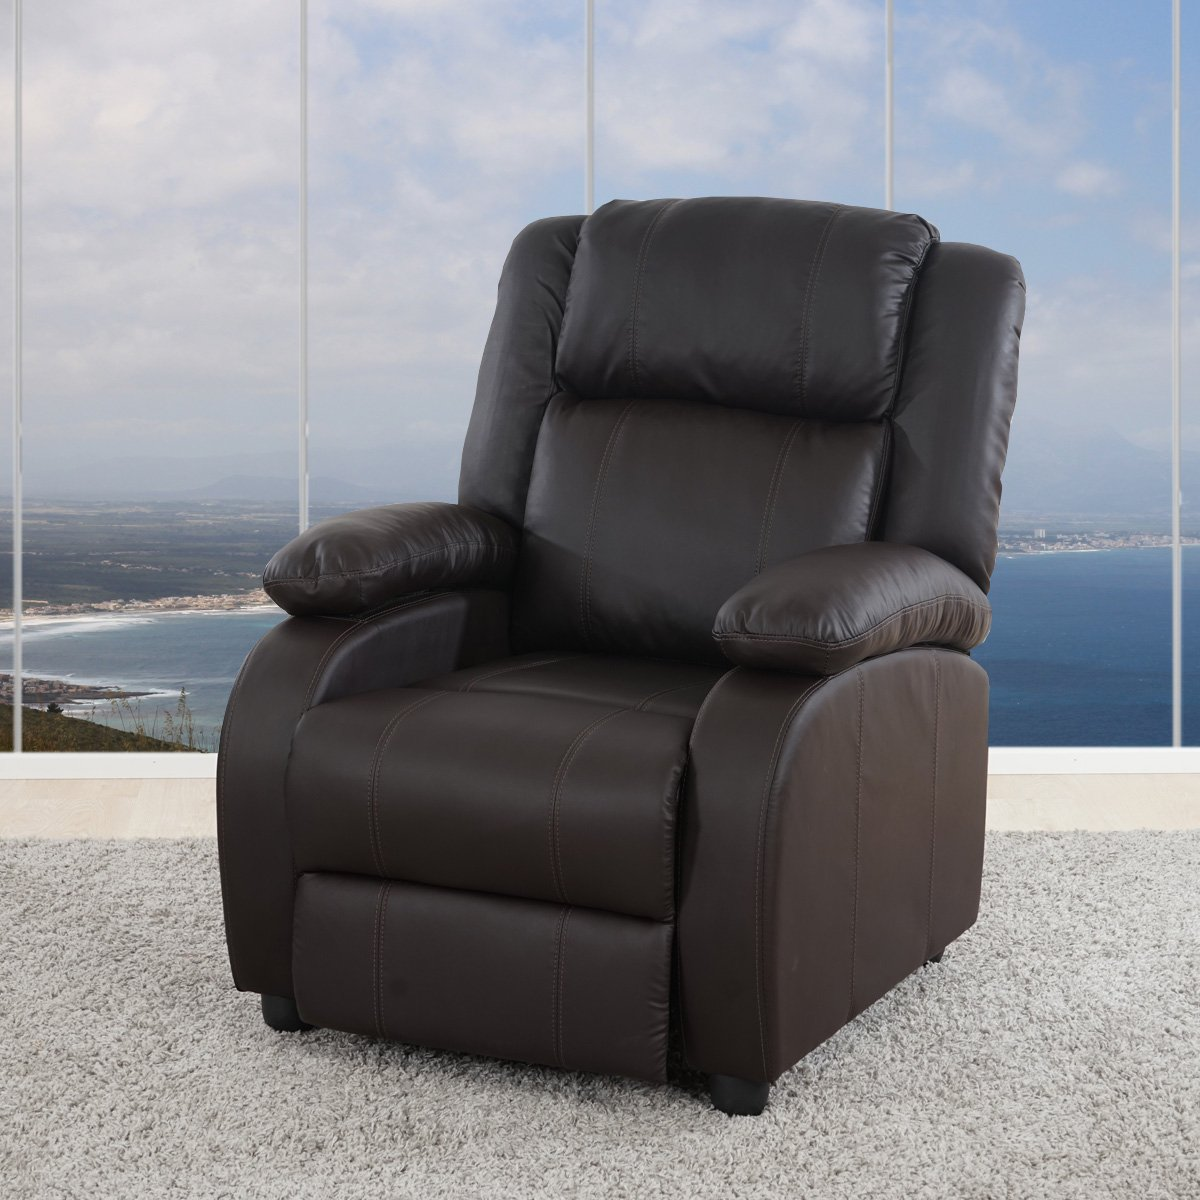 Sill n relax reclinable lincon en color marr n sillon for Sillon reclinable